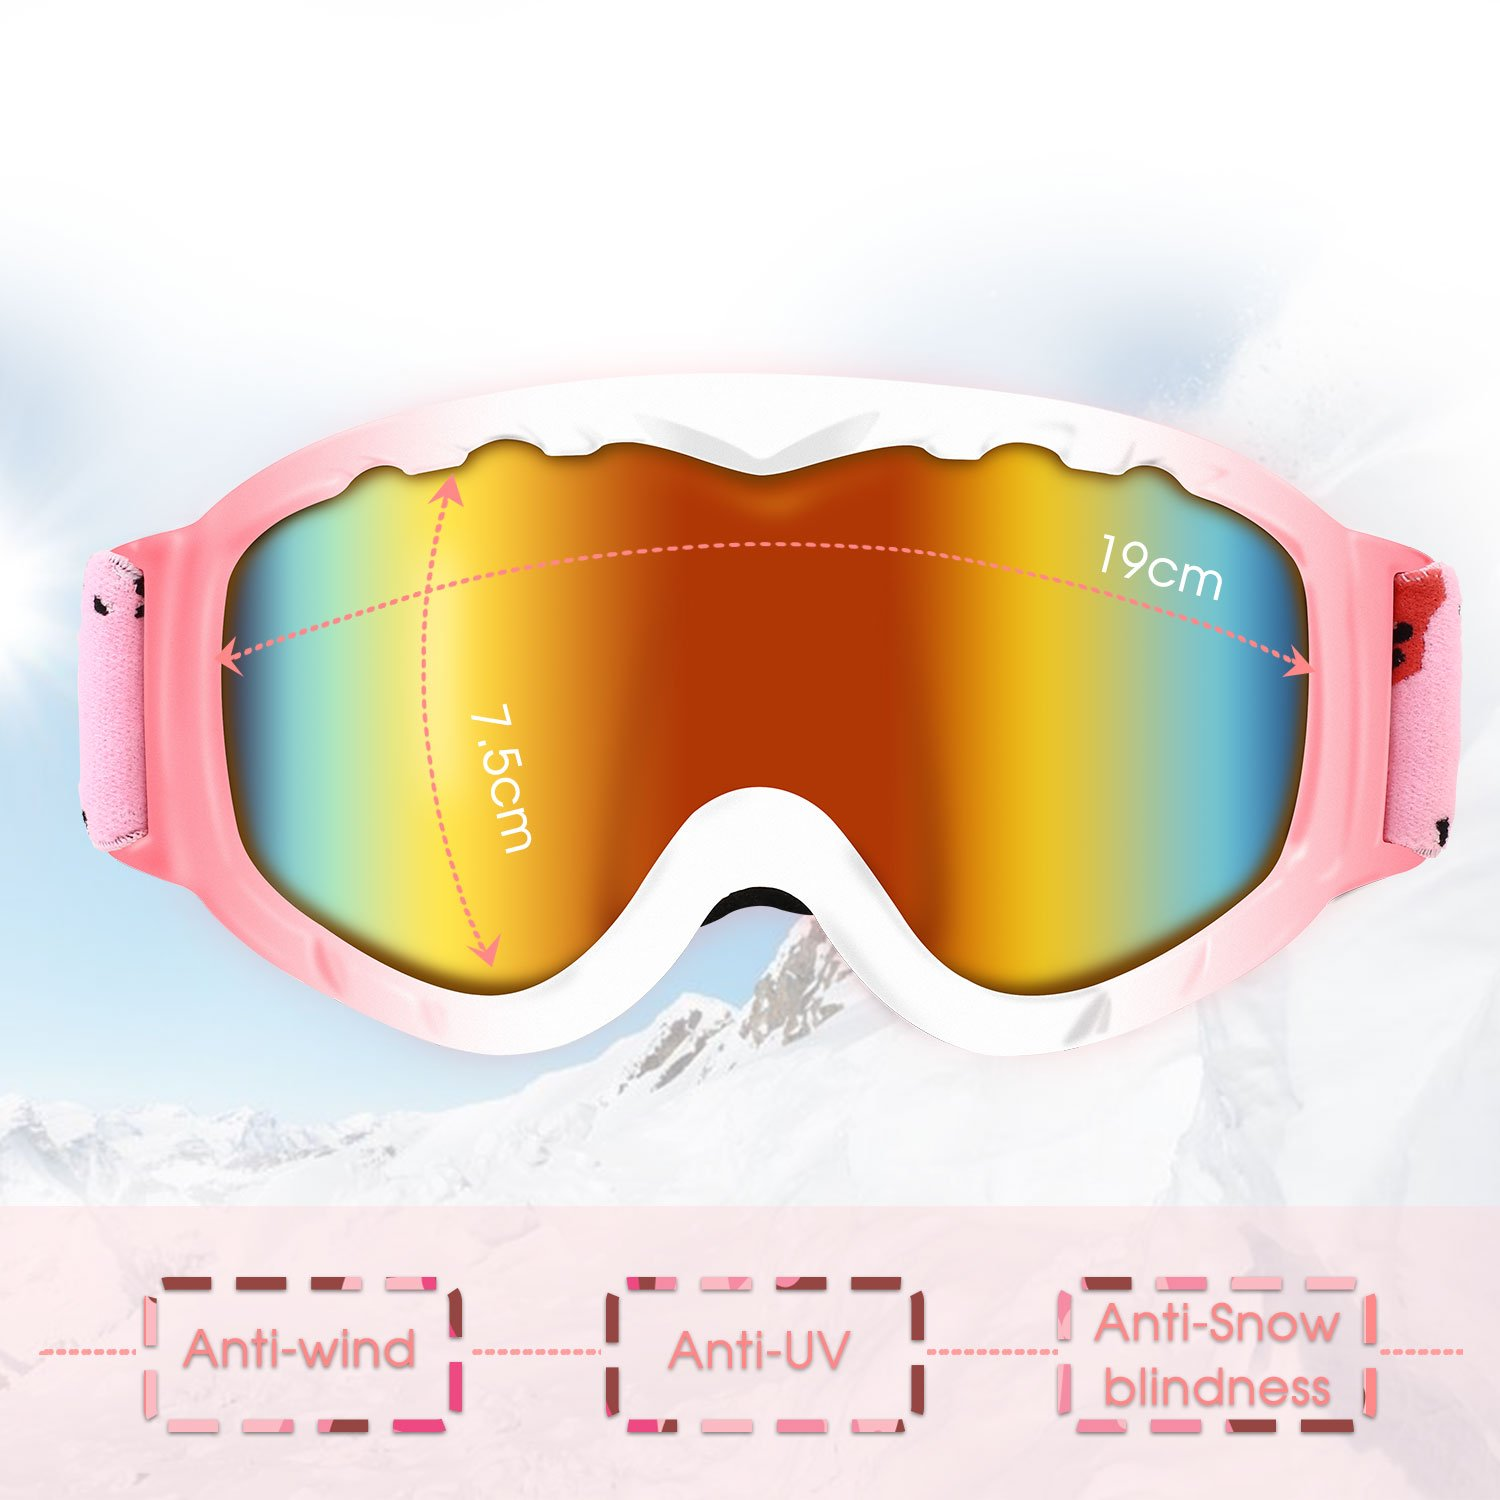 DAS Leben Ski Goggles Professional Anti-fog 104% UV Protection Snowboard Goggles With Sports Goggle Box for Skiing Snow Snowmobile Skiing Skate Winter(Men/Women/Girls/Boys/Kids)